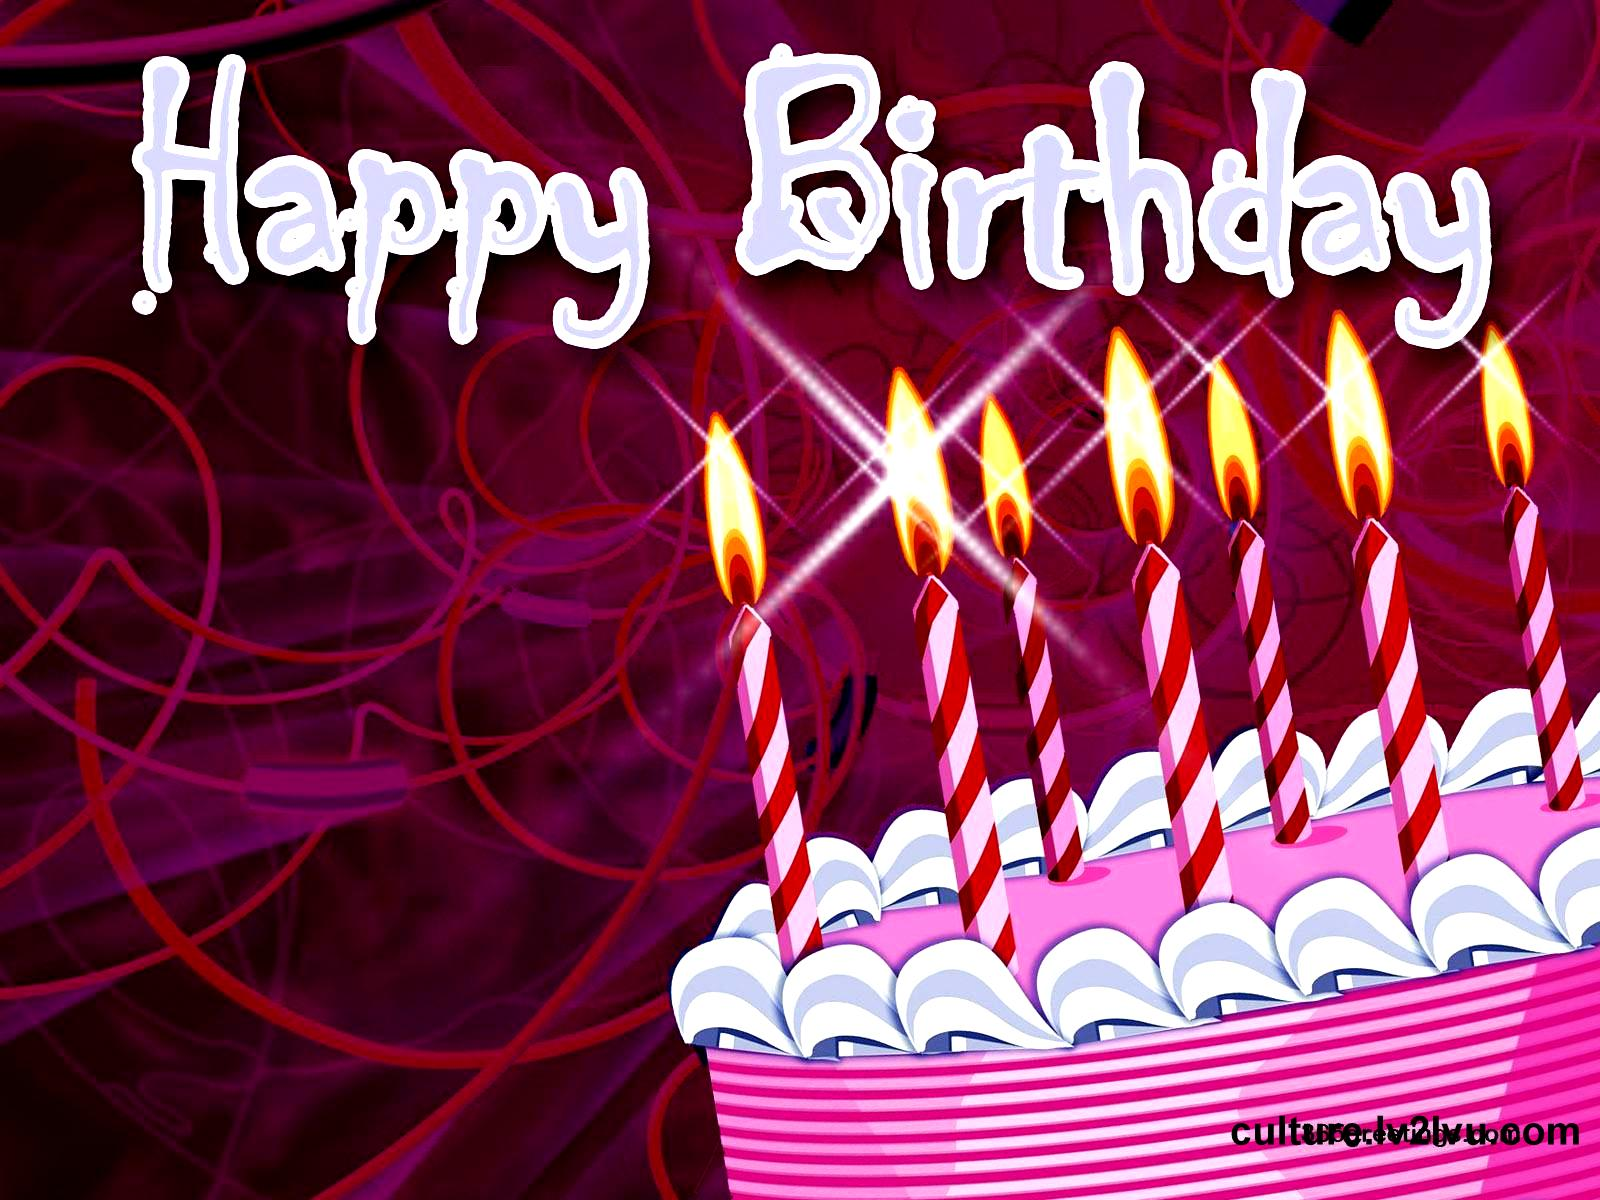 birthday wishes wallpaper ; happy-birthday-wishes-wallpapers-2